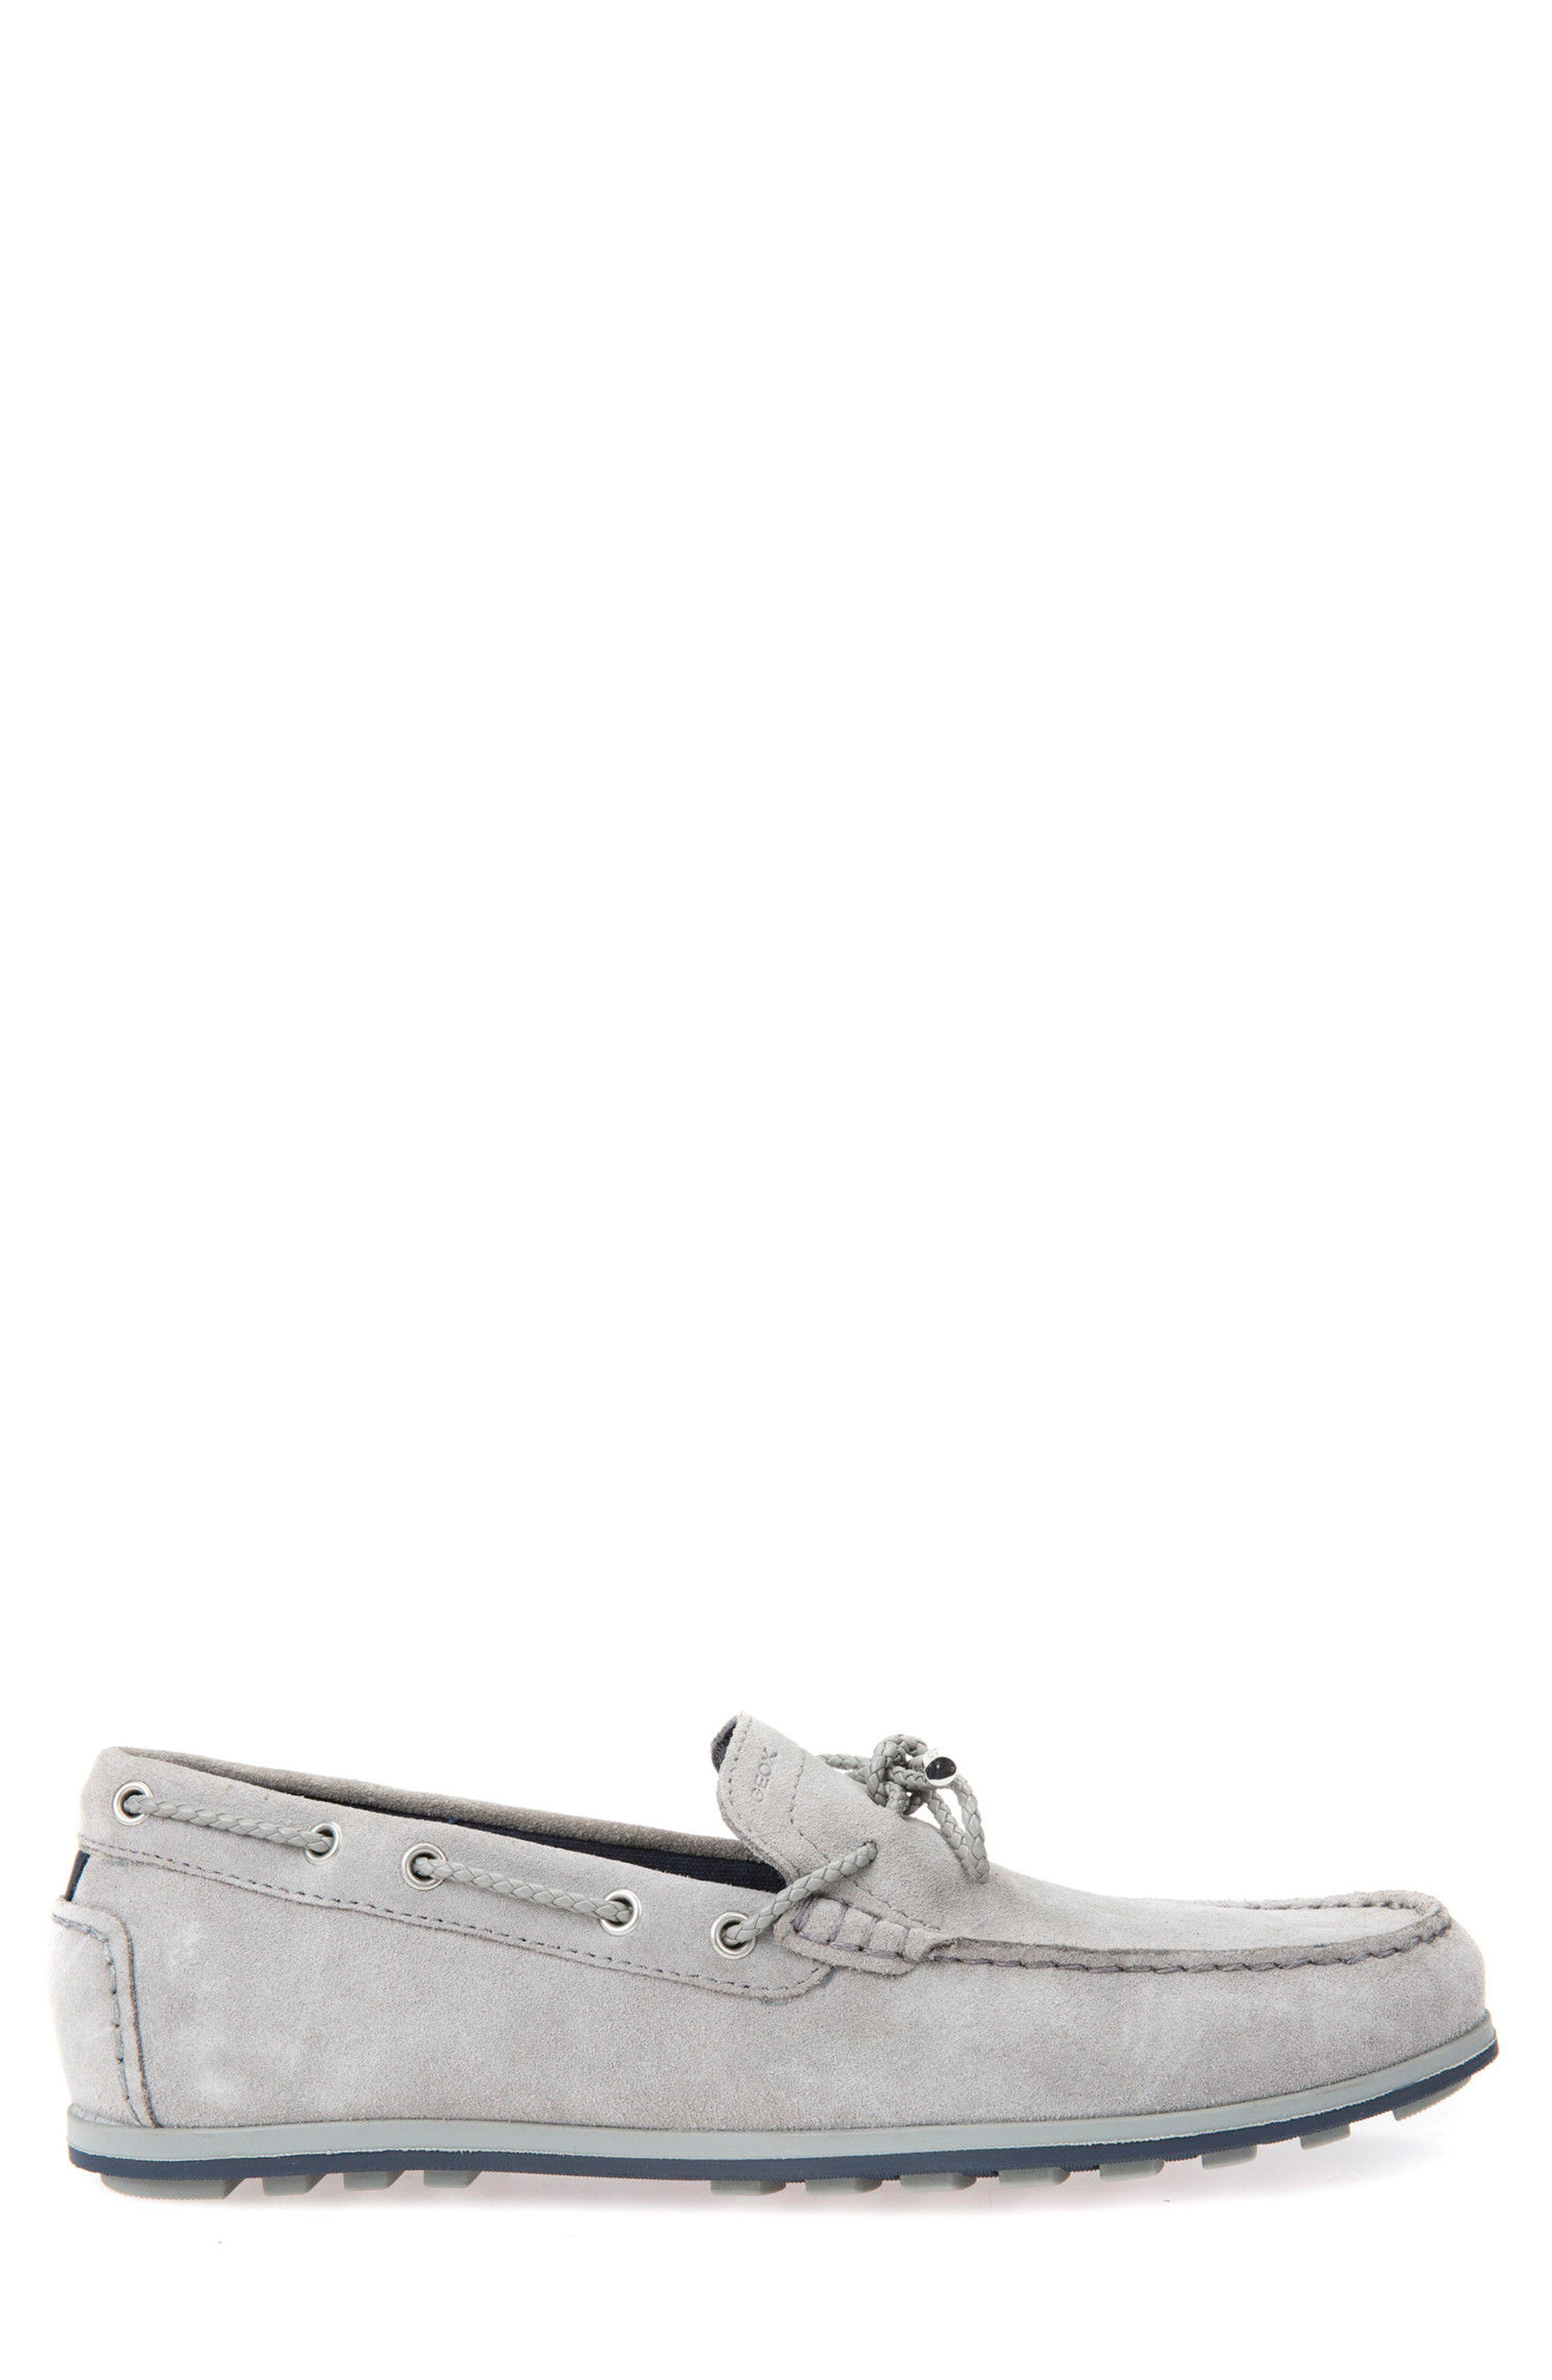 Mirvin 2 Boat Shoe,                             Alternate thumbnail 3, color,                             Stone Suede